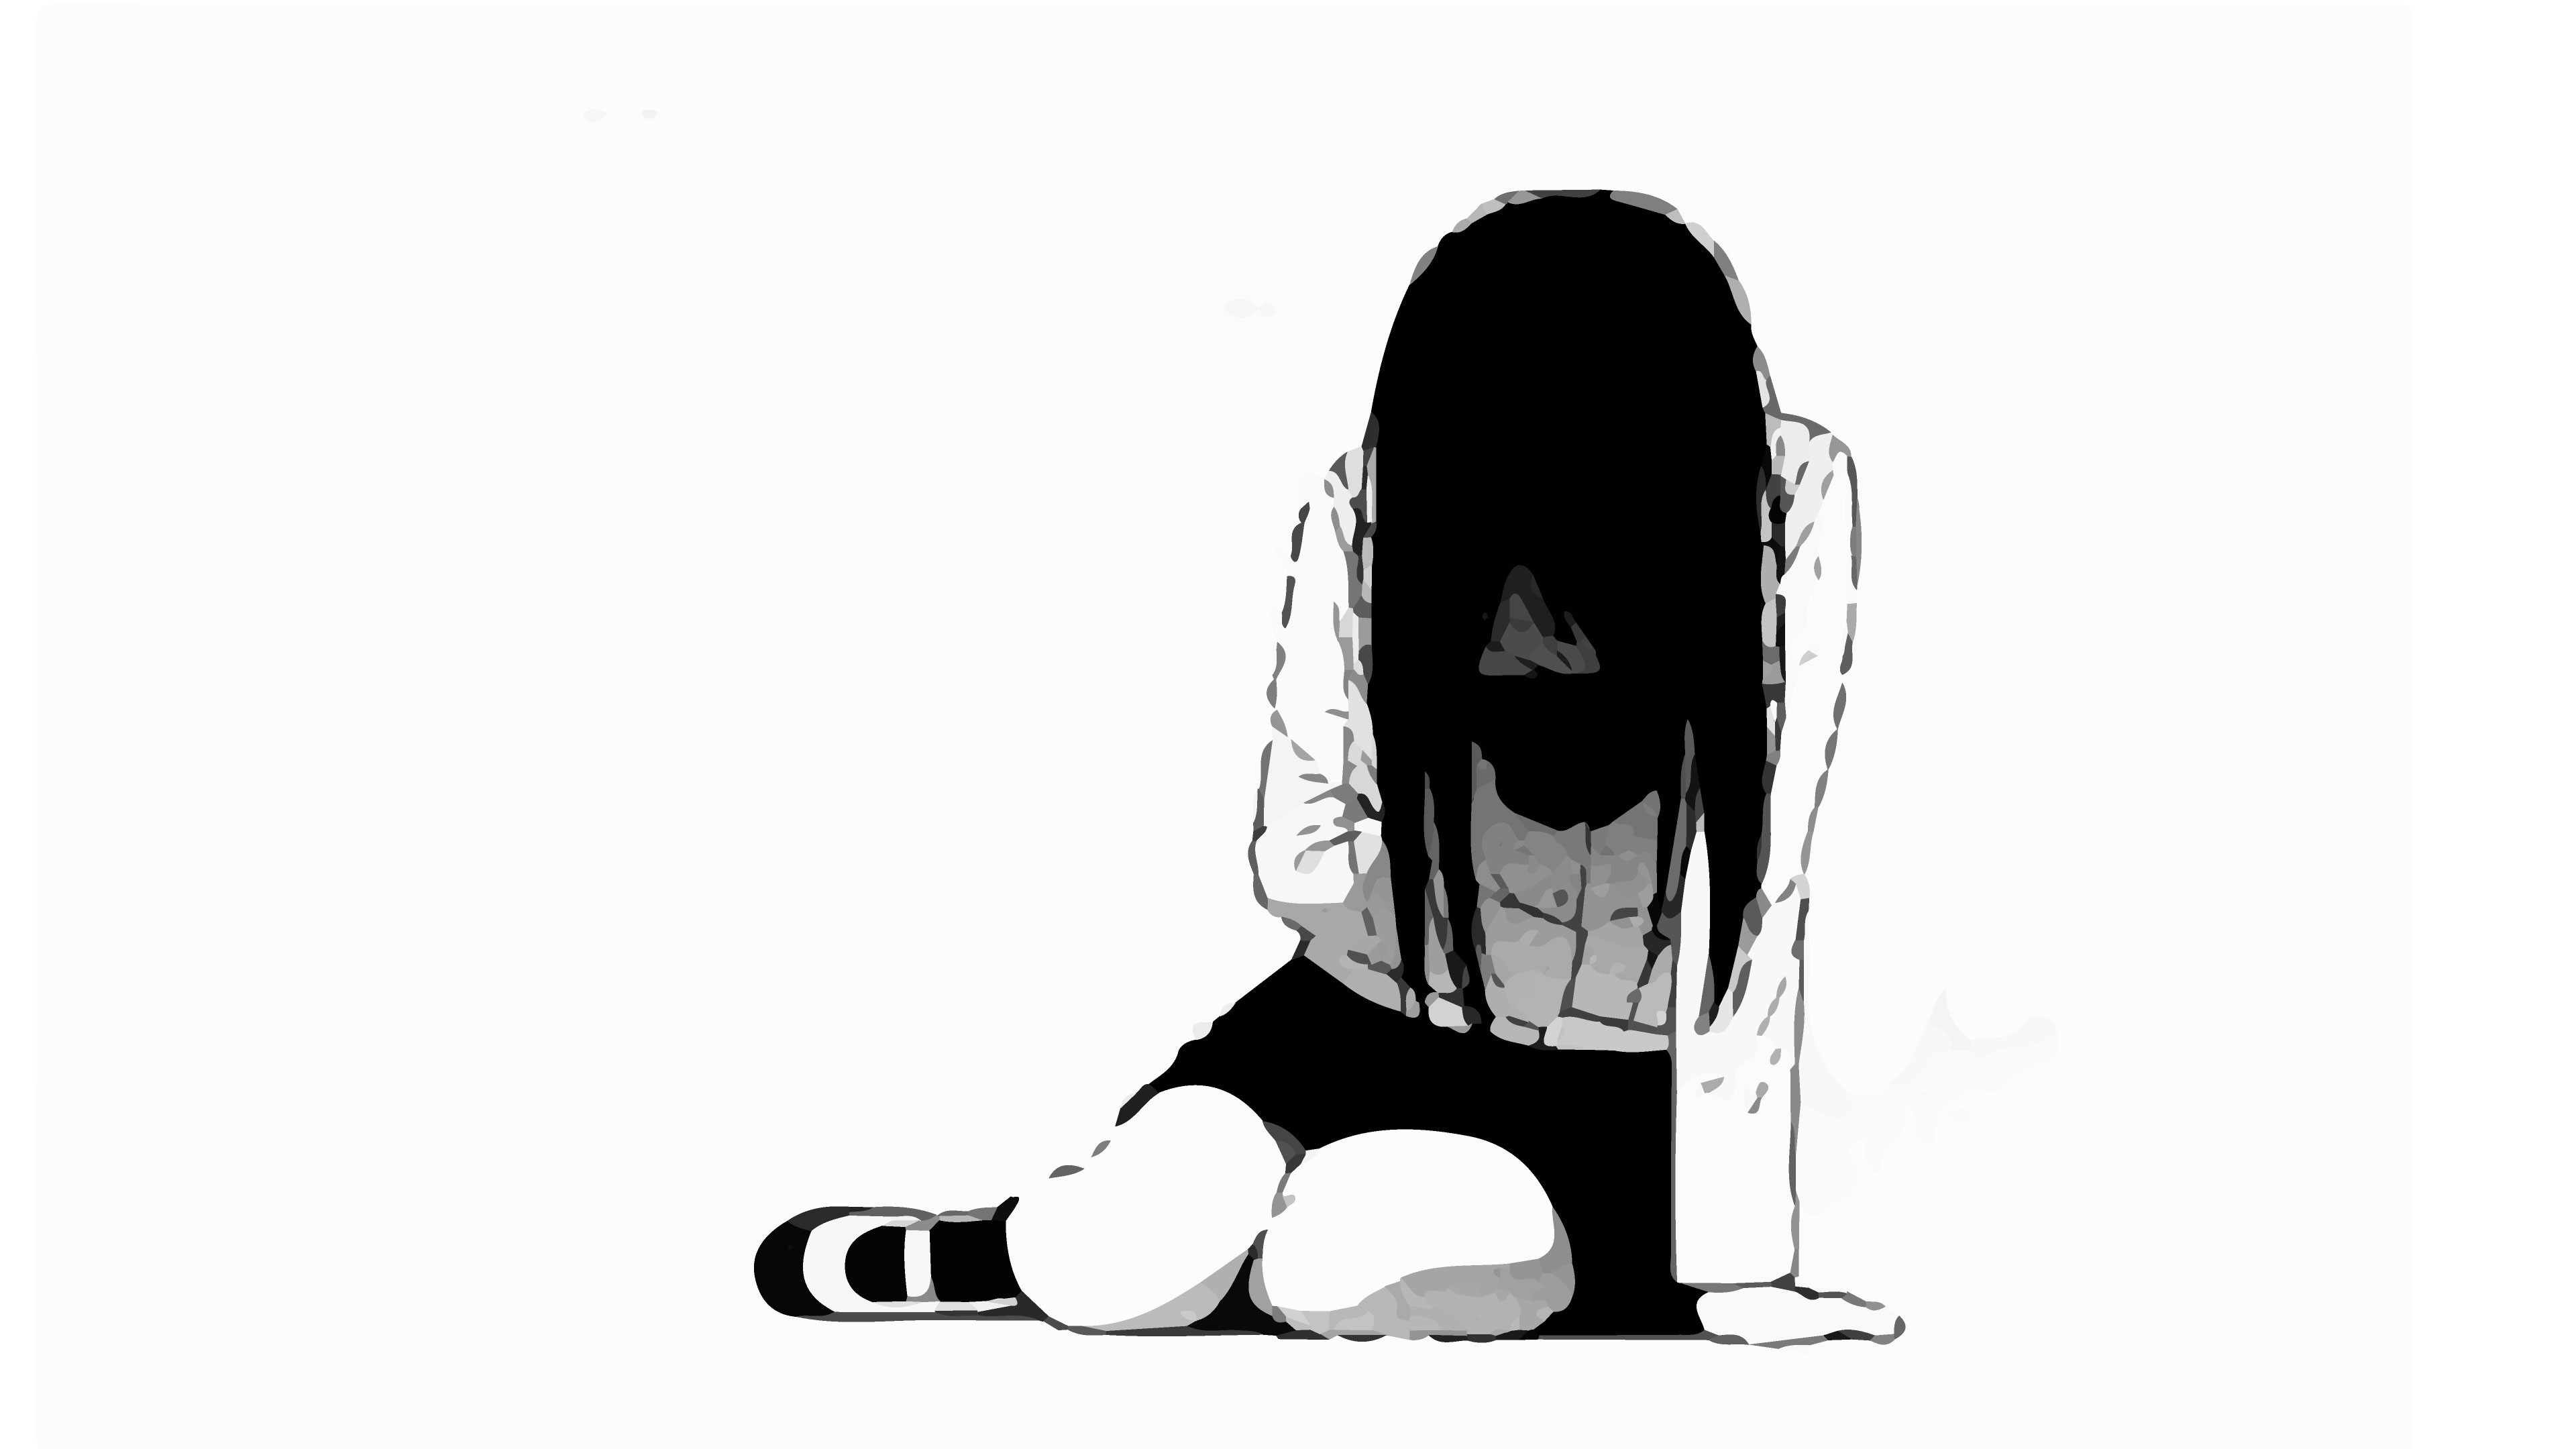 2560x1440 anime girl sad school uniform windy black hair profile view